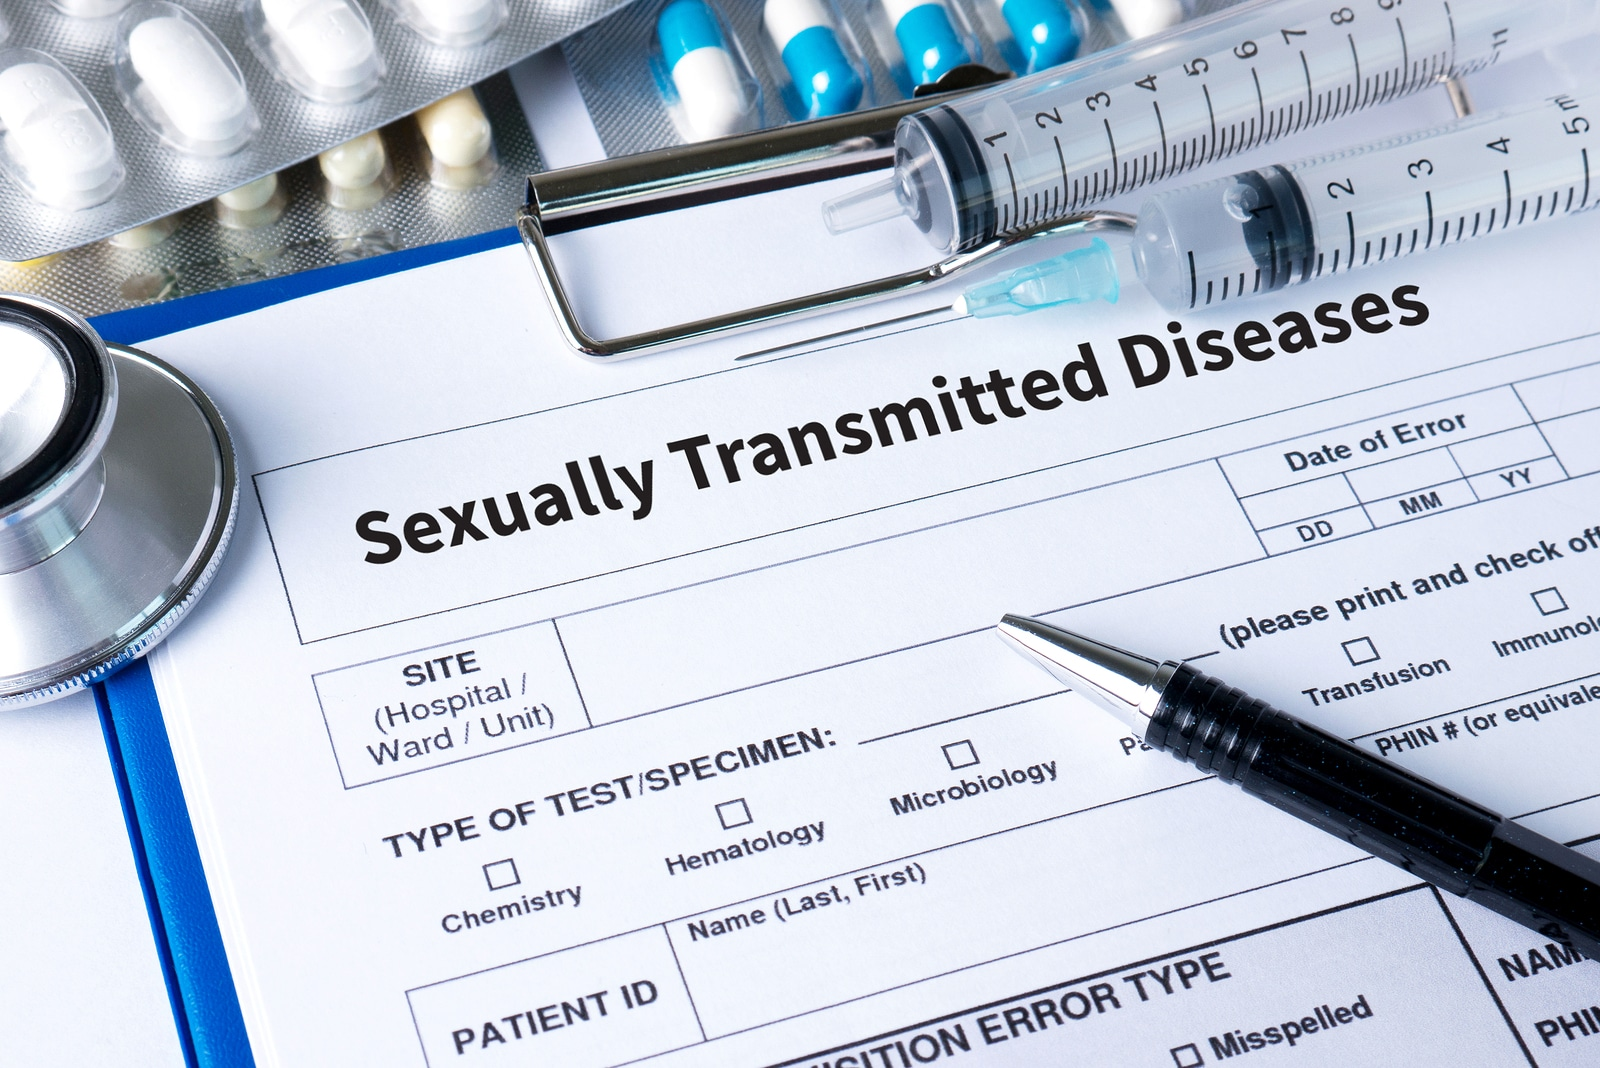 4 Reasons Routine STD Tests Are Recommended